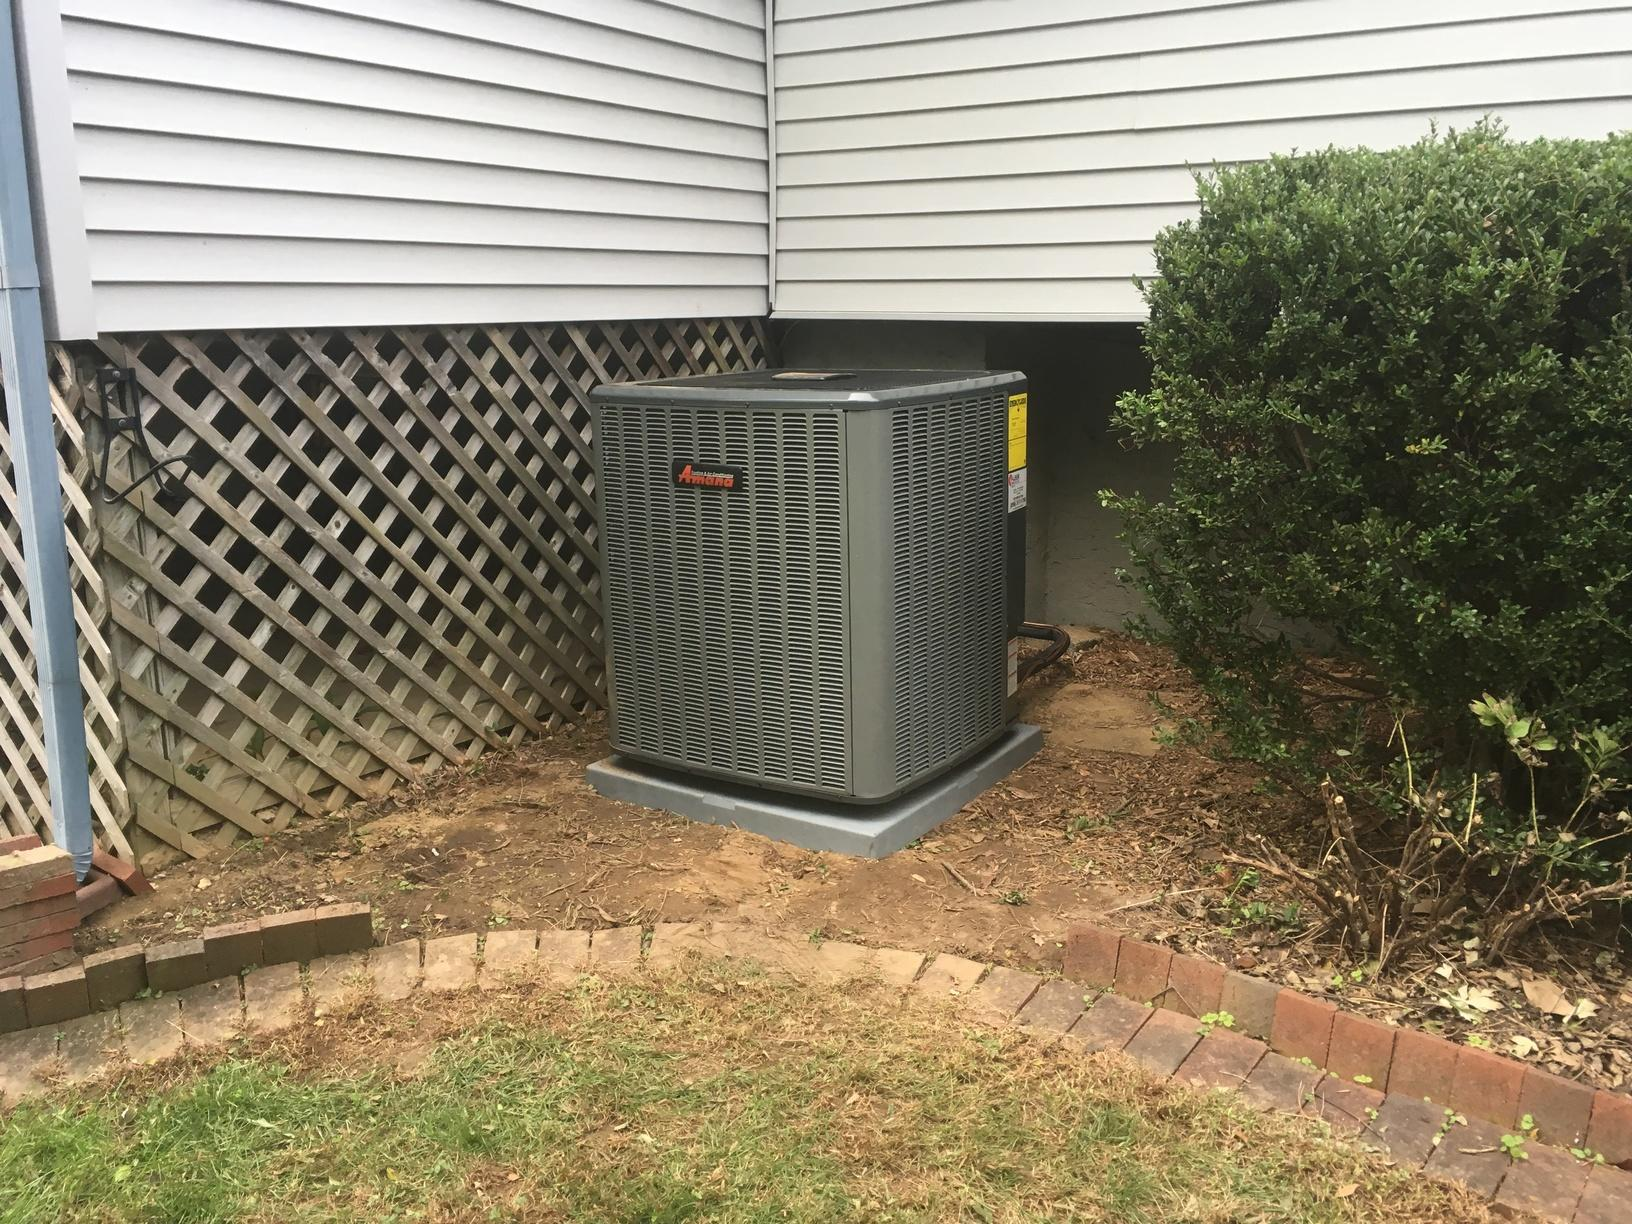 New Bryant 2 Ton 16 Seer Air Conditioner System in Moorestown, NJ - After Photo